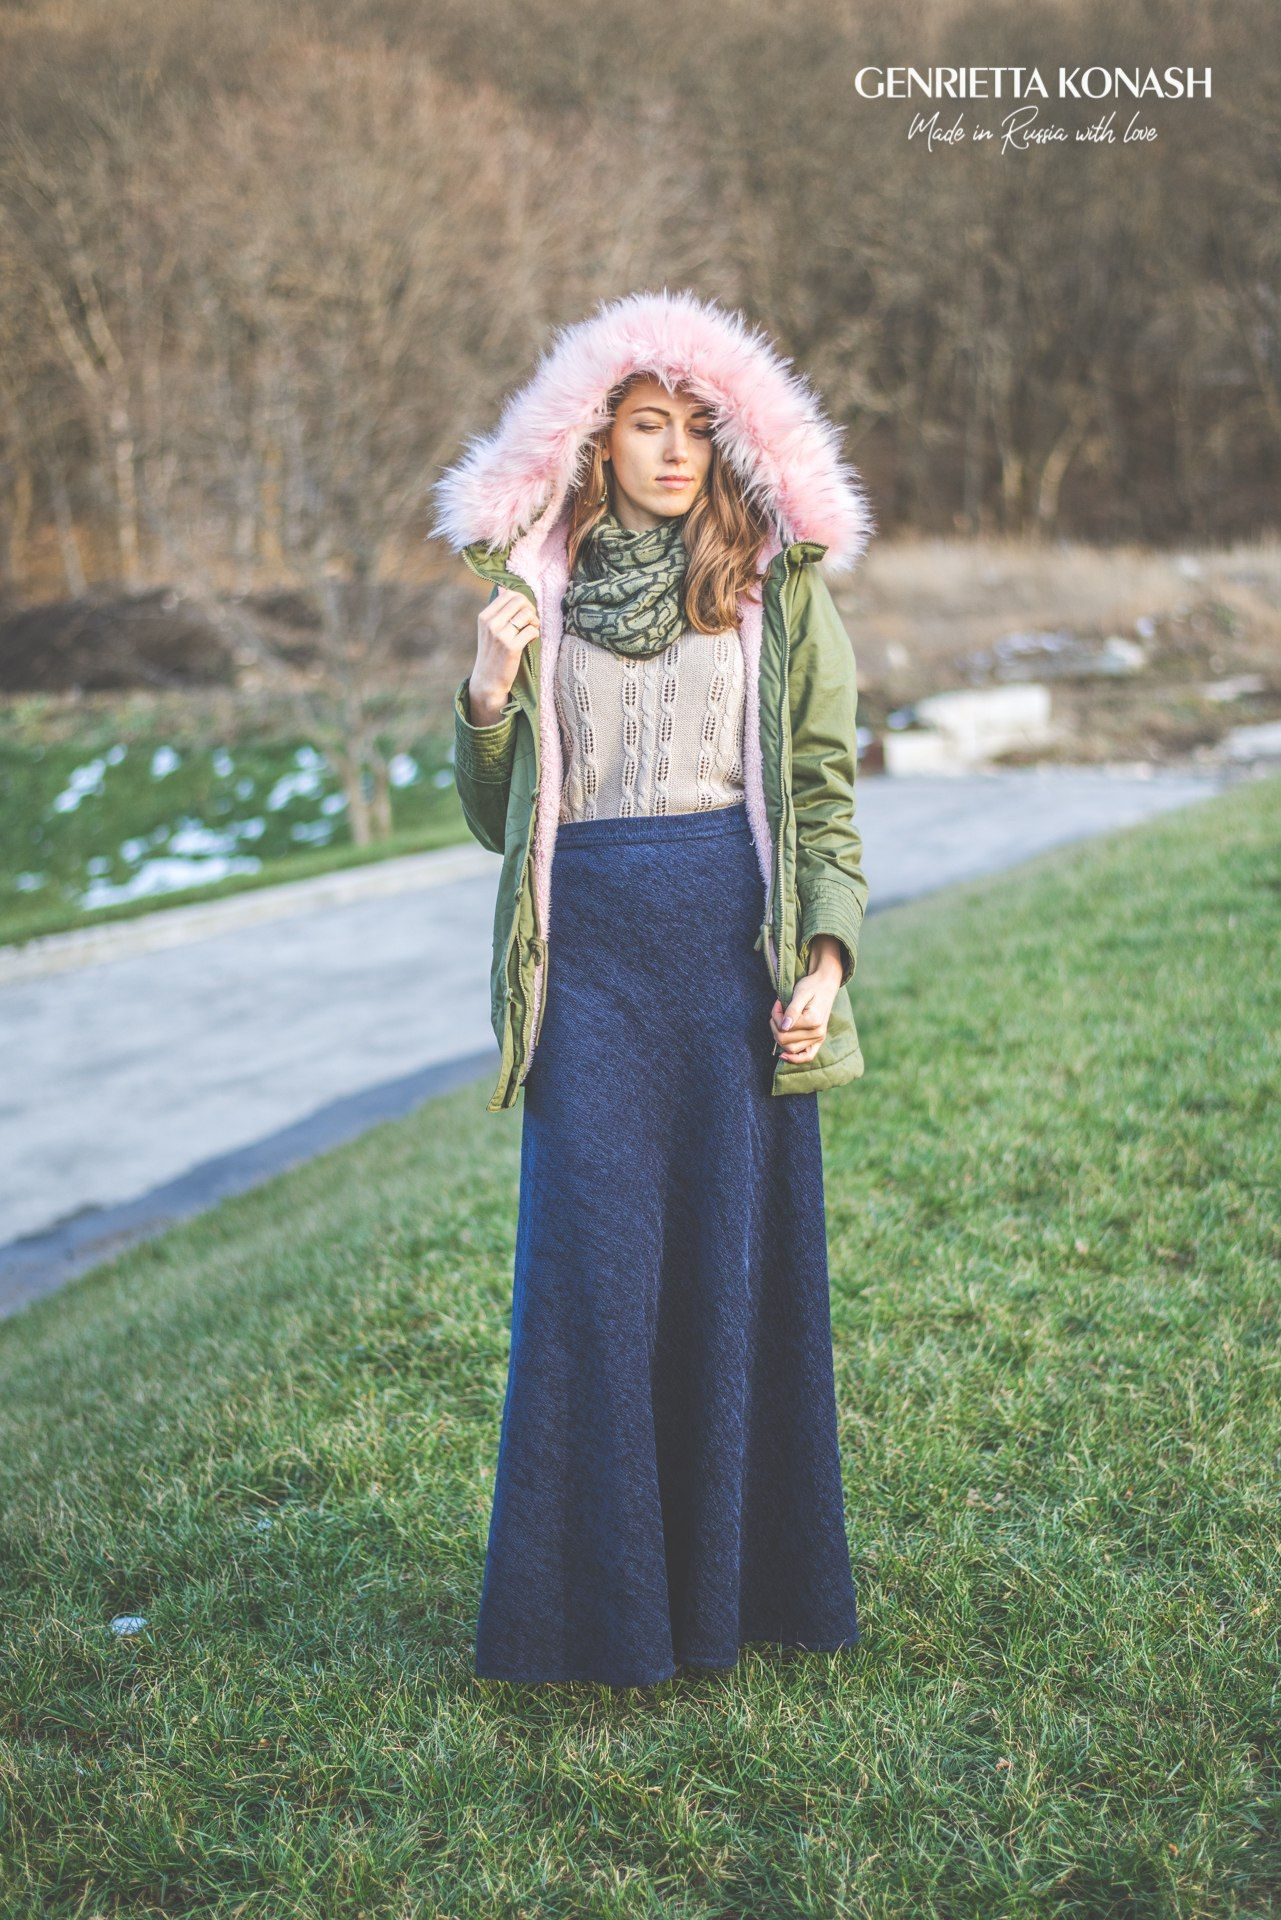 With what to wear a skirt half-sun: combination, interesting ideas and recommendations of professionals